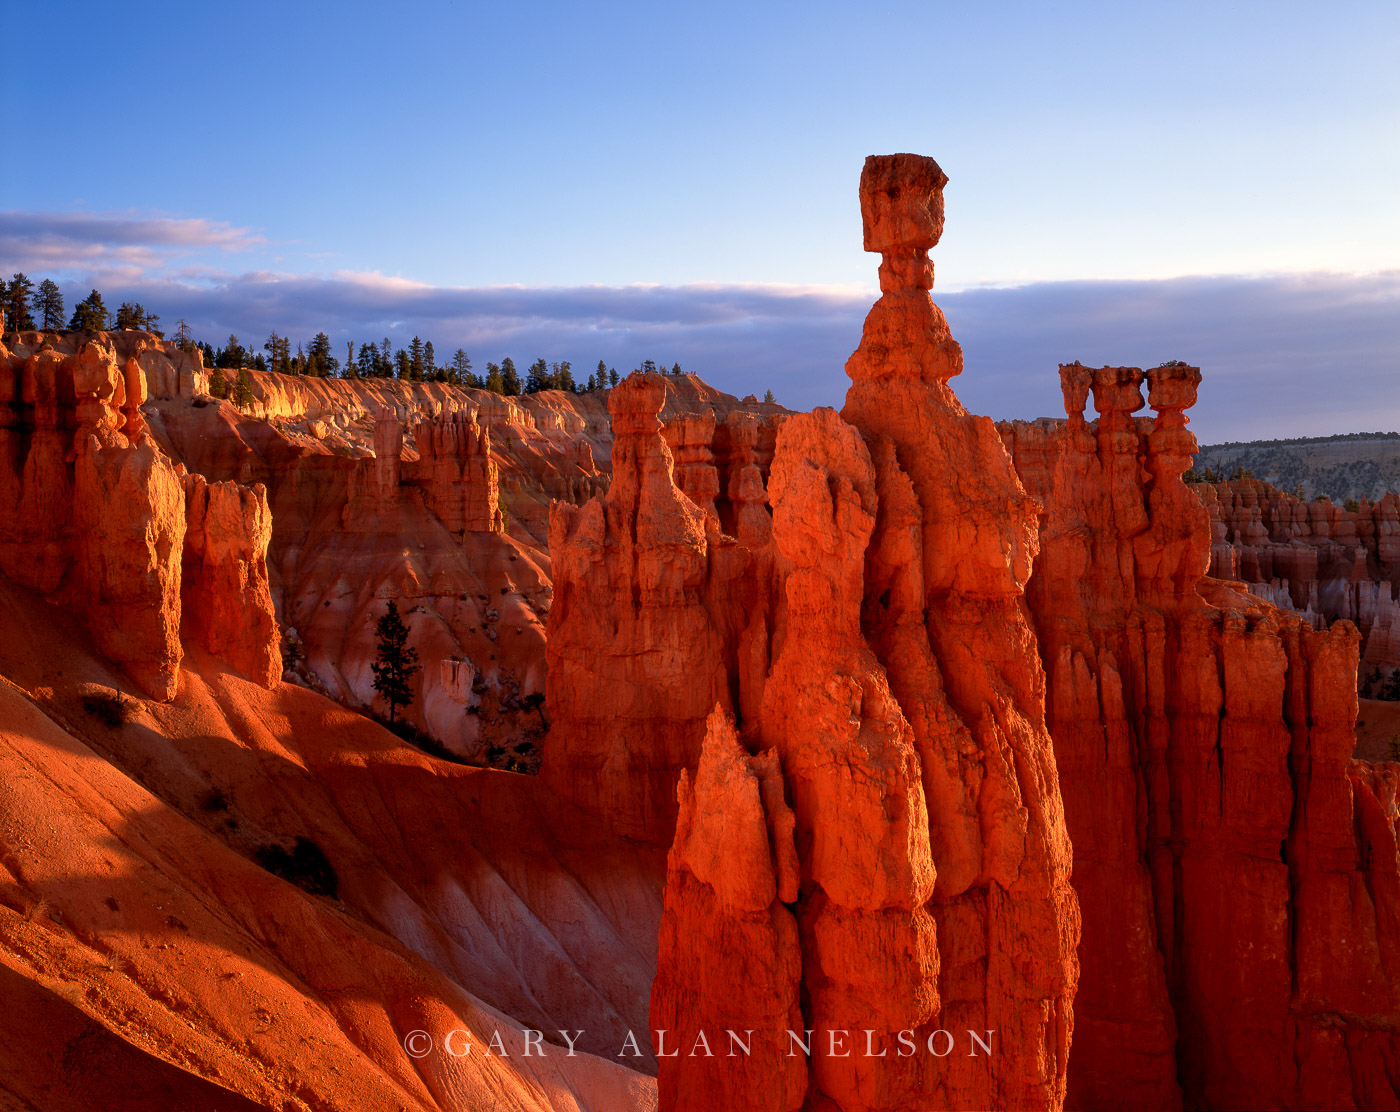 ... : Bryce Canyon National Park, Utah : Gary Alan Nelson Photography